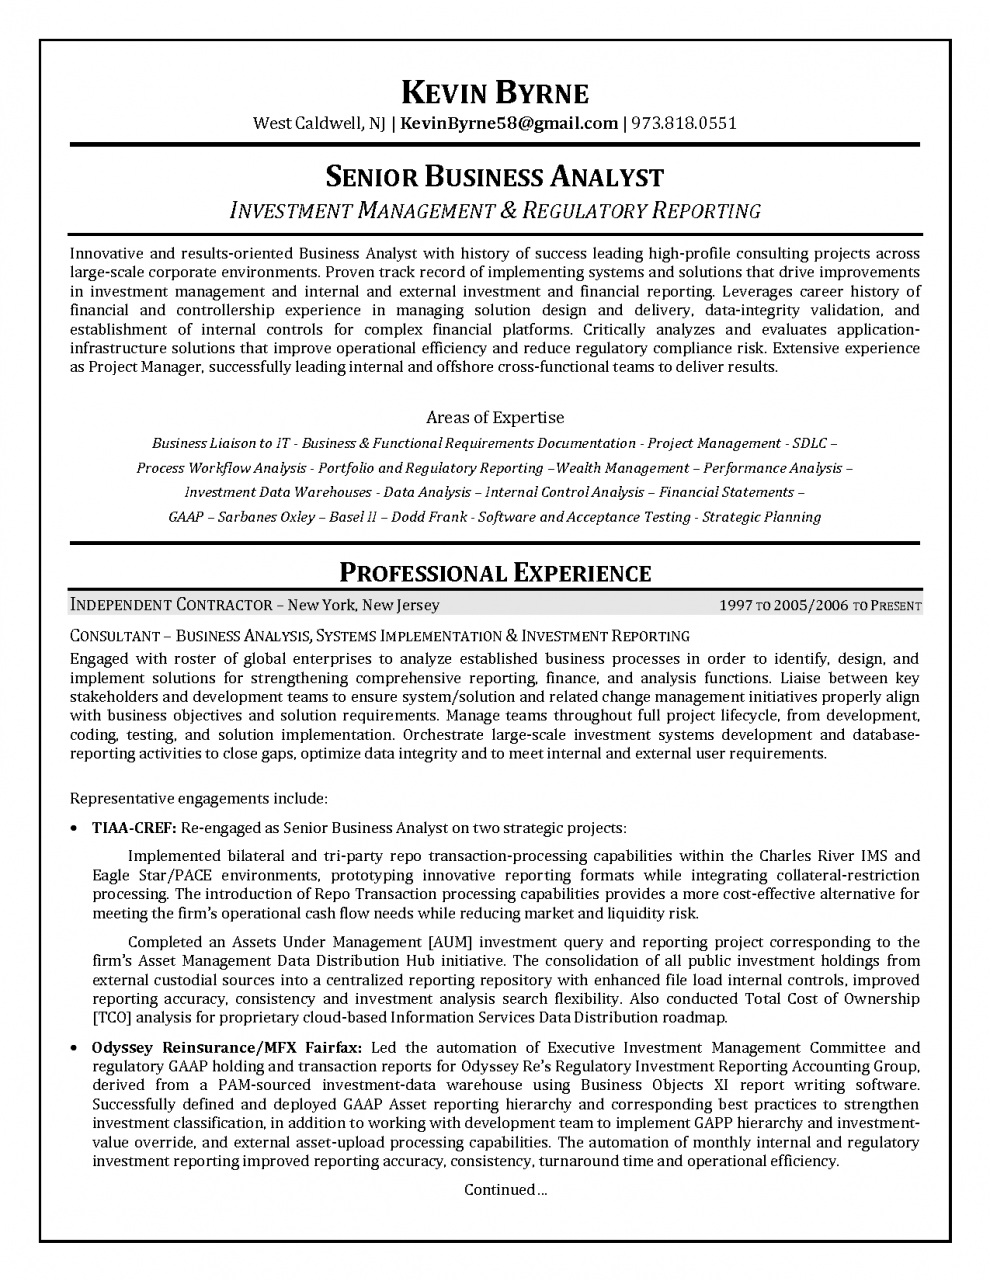 resume senior business analyst resume format business analyst senior resume workbloom 135933271 sample resume for - Business Analyst Resume Indeed